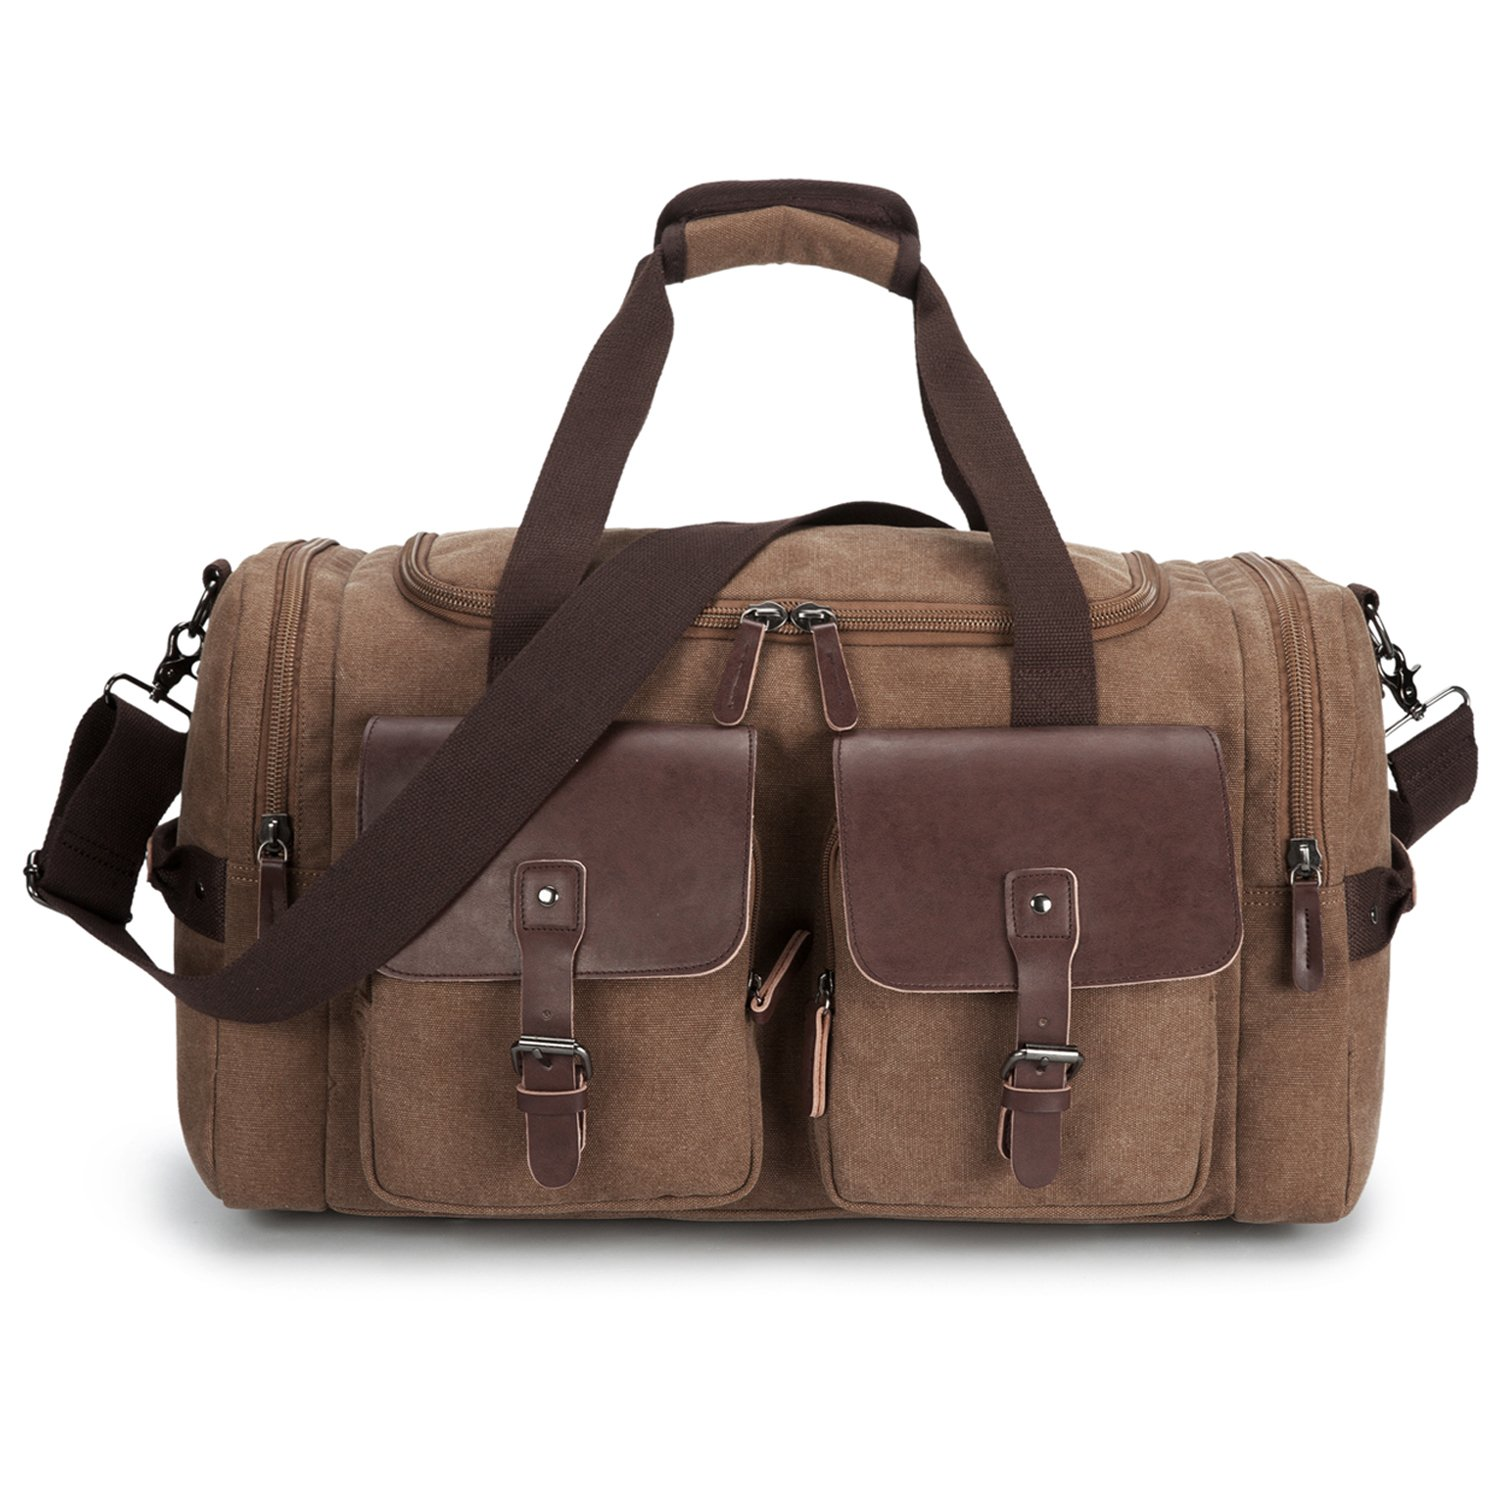 Leather Overnight Duffle Bag Canvas Travel Tote Duffel Weekend Bag Luggage (Coffee)